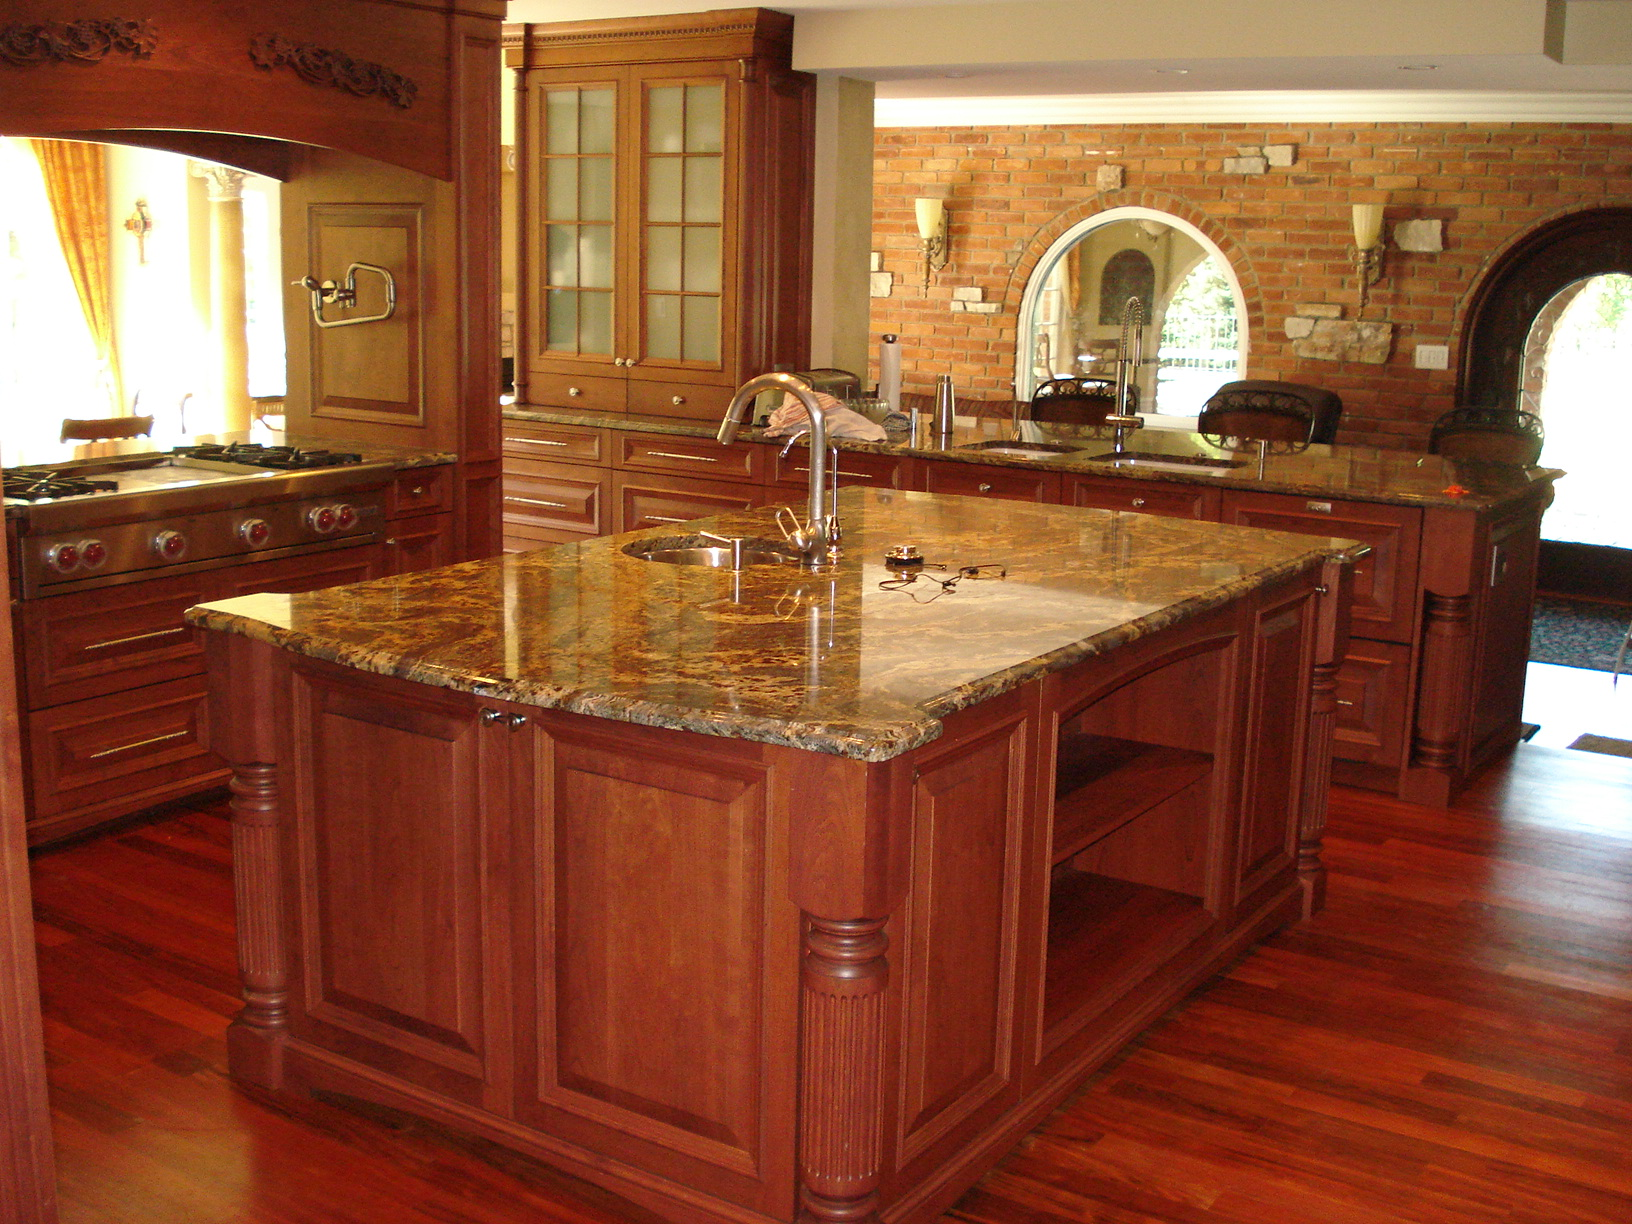 countertops countertops for kitchens Countertops